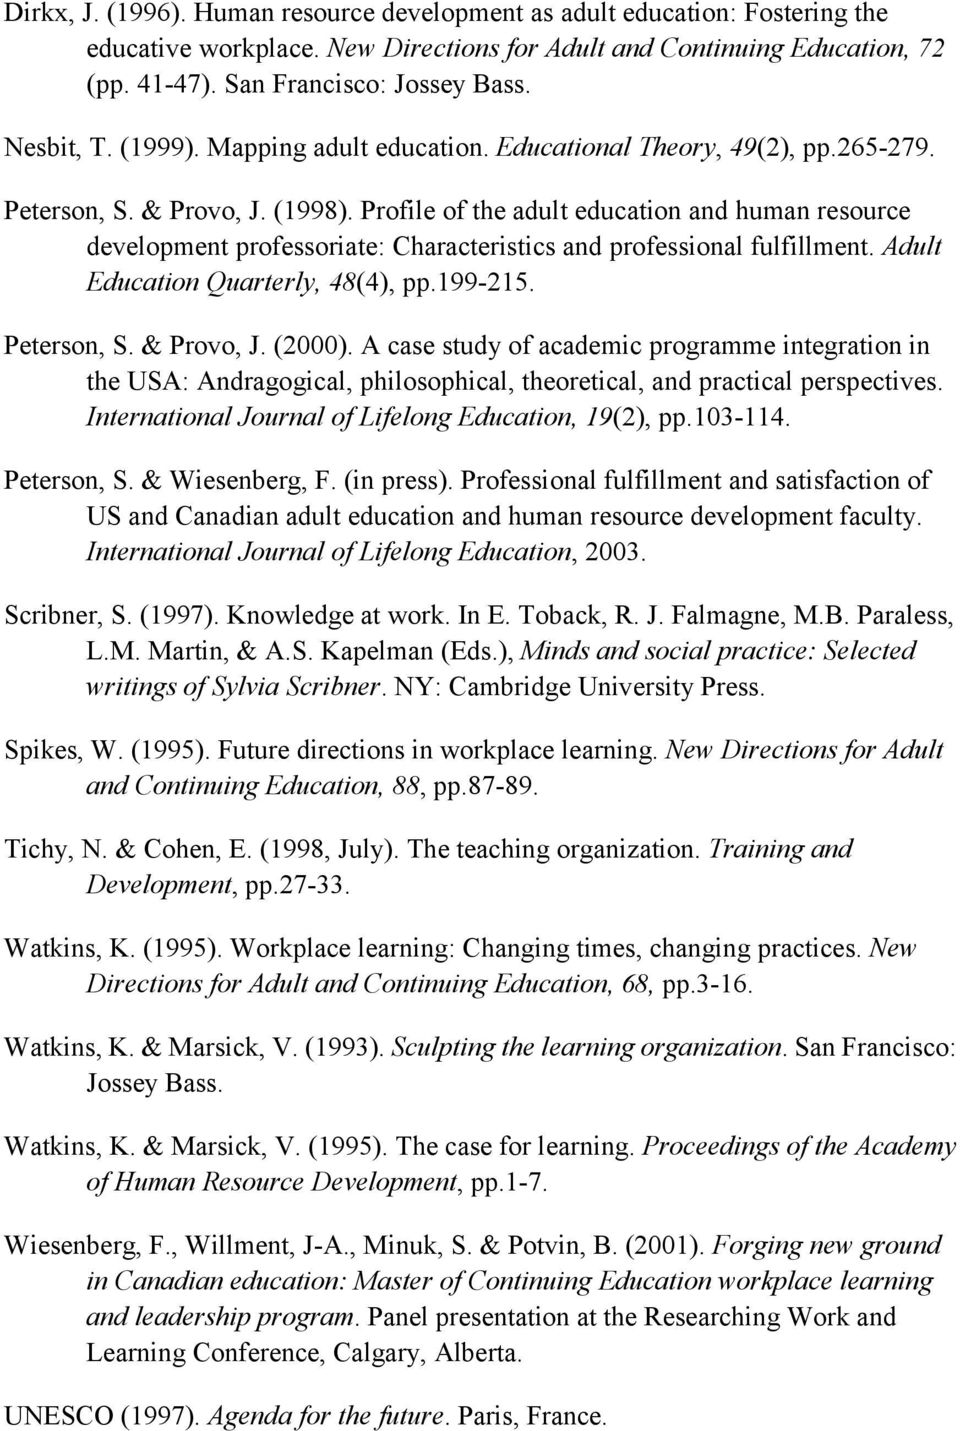 Profile of the adult education and human resource development professoriate: Characteristics and professional fulfillment. Adult Education Quarterly, 48(4), pp.199-215. Peterson, S. & Provo, J.